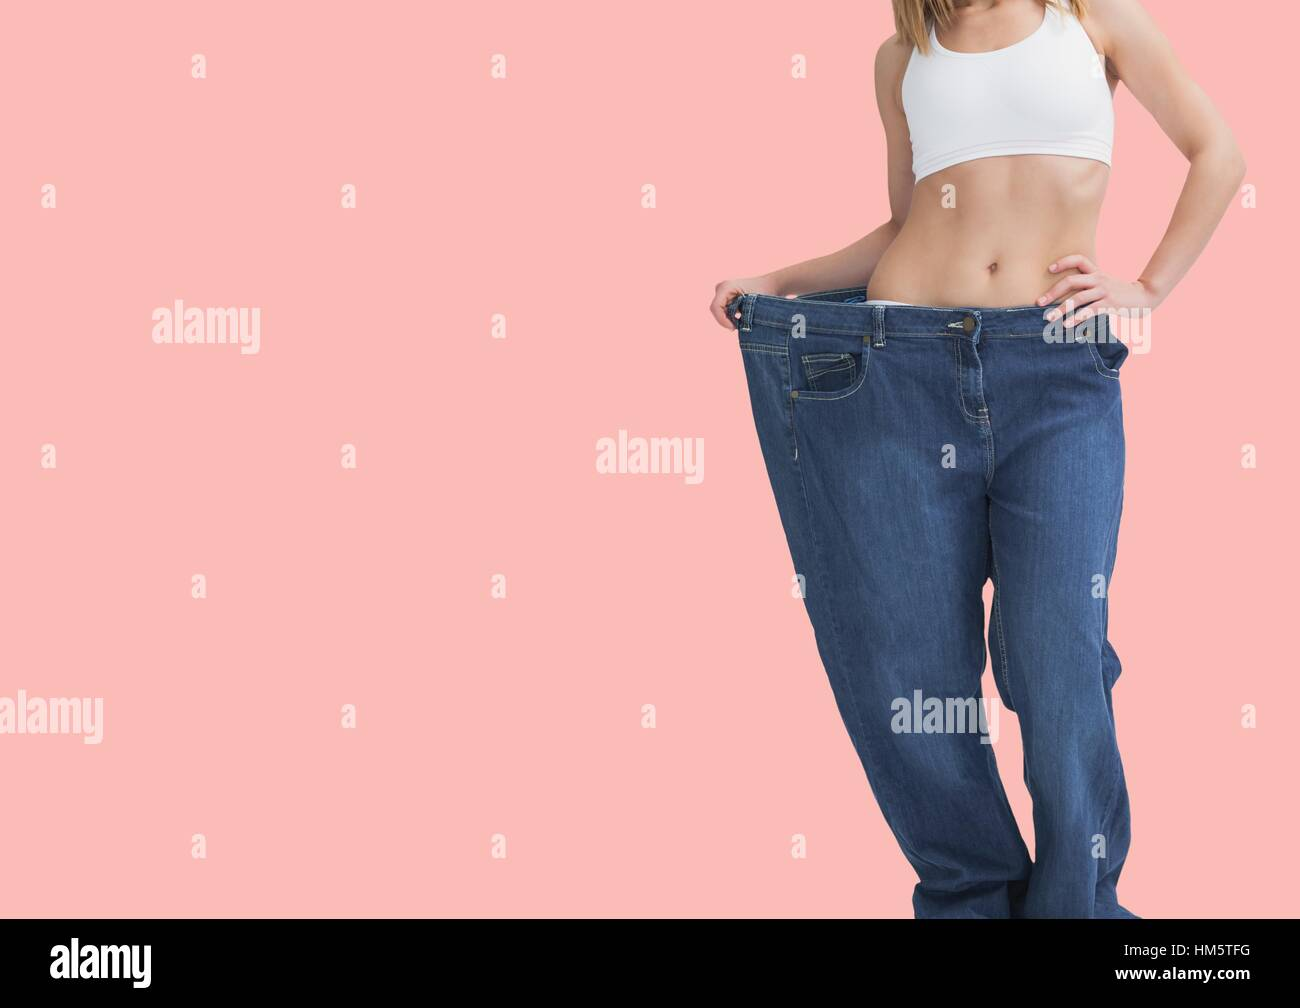 Dieting woman in big pant - Stock Image